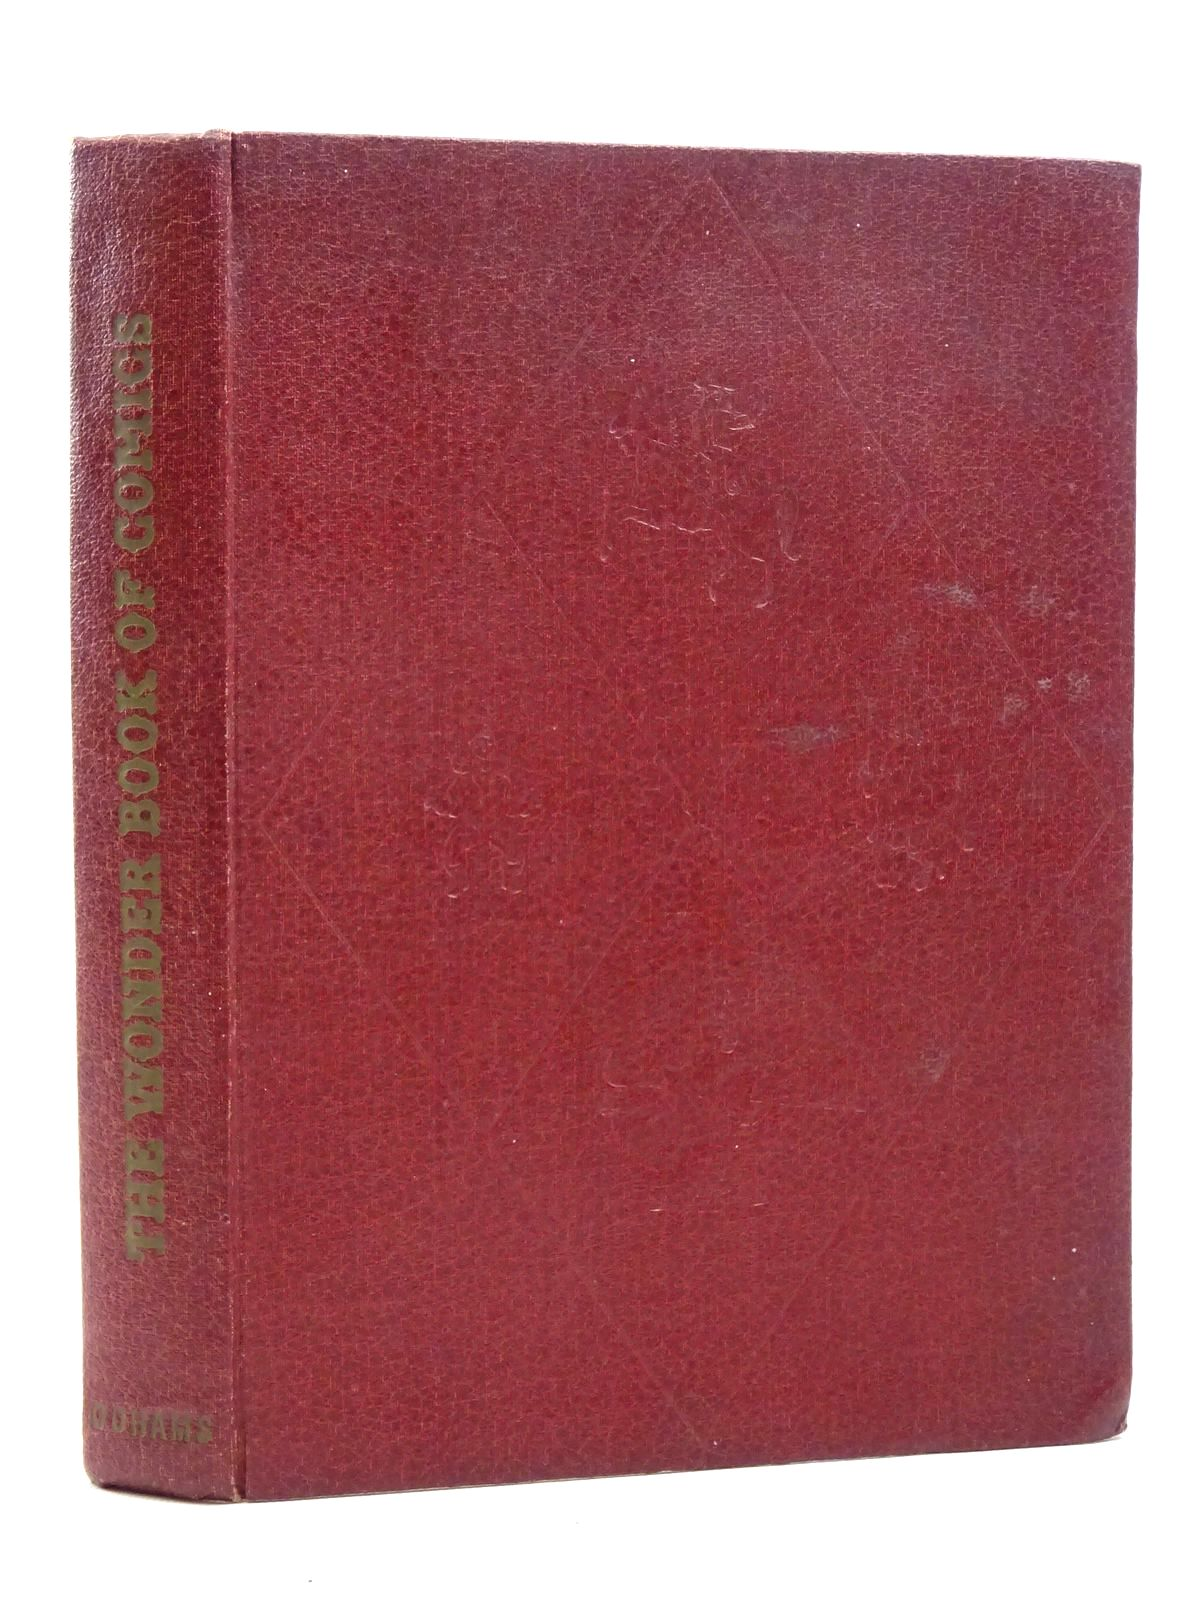 Photo of THE WONDER BOOK OF COMICS written by Blyton, Enid<br />Duff, Douglas V.<br />Johns, W.E.<br />Richards, Frank<br />et al,  illustrated by Nickless, Will<br />et al.,  published by Odhams Press Ltd. (STOCK CODE: 2125369)  for sale by Stella & Rose's Books